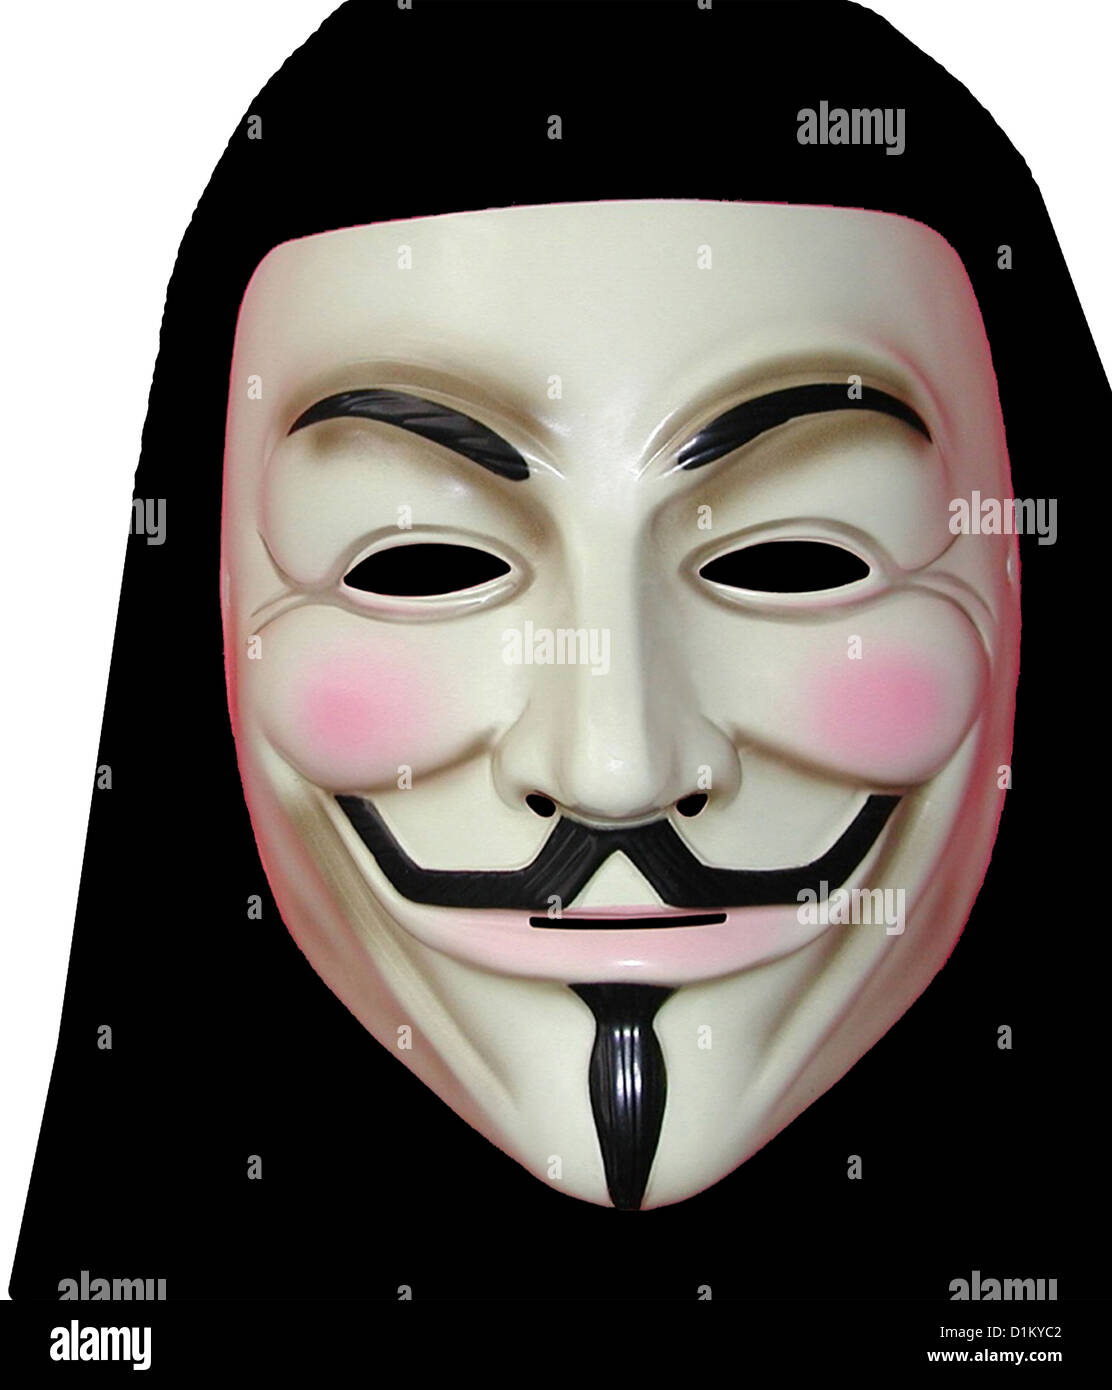 An illustration of an anonymous masked man symbolic of hidden activities like hacking - Stock Image